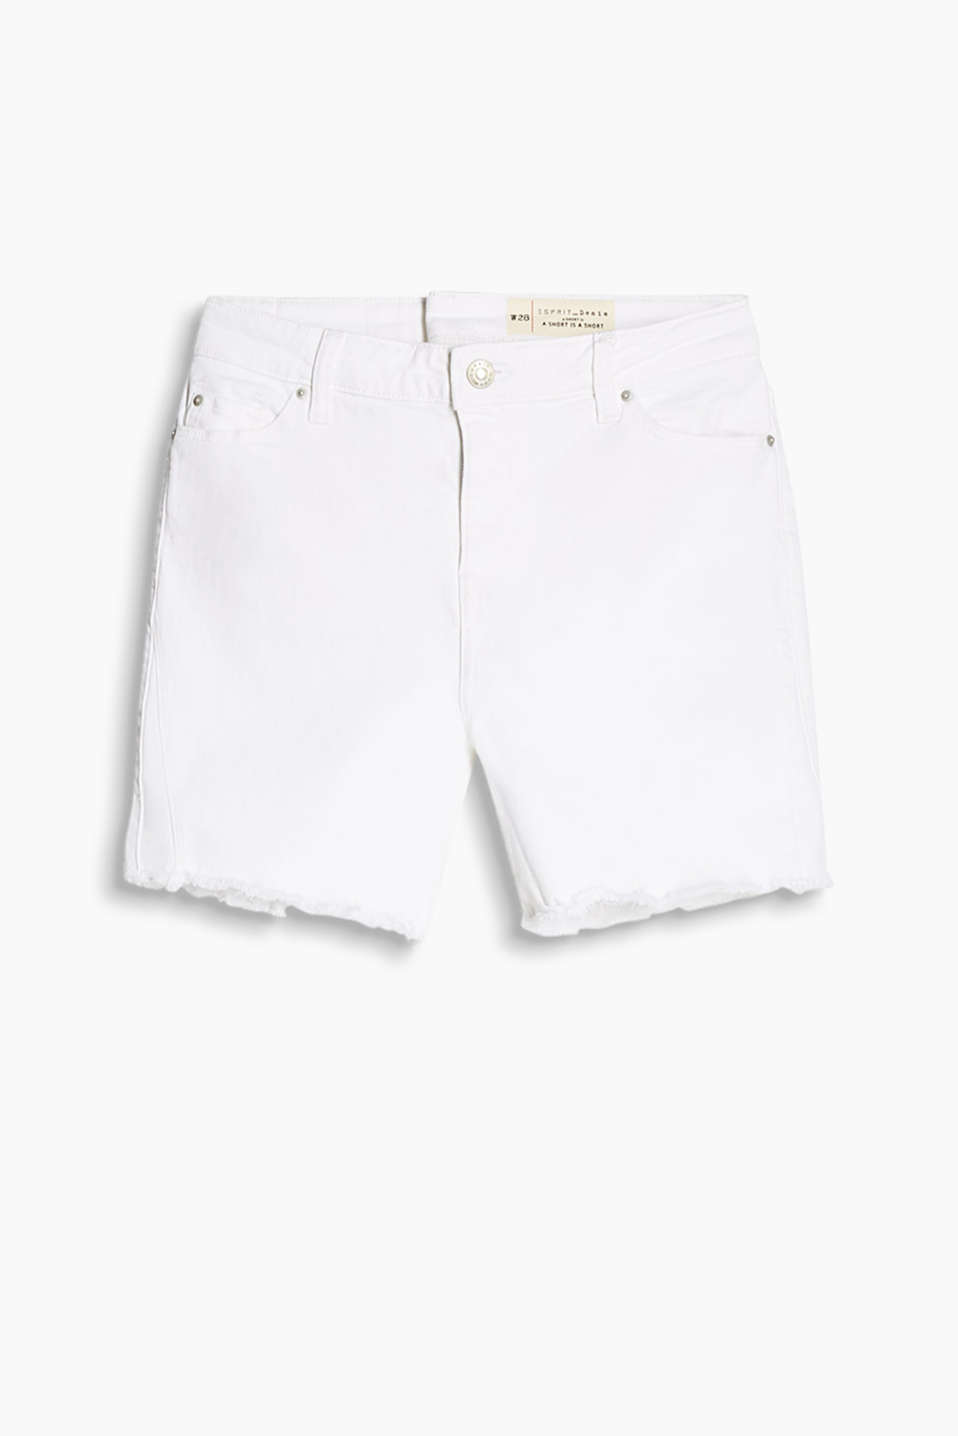 Witte short van stretchy denim in five-pocket-stijl